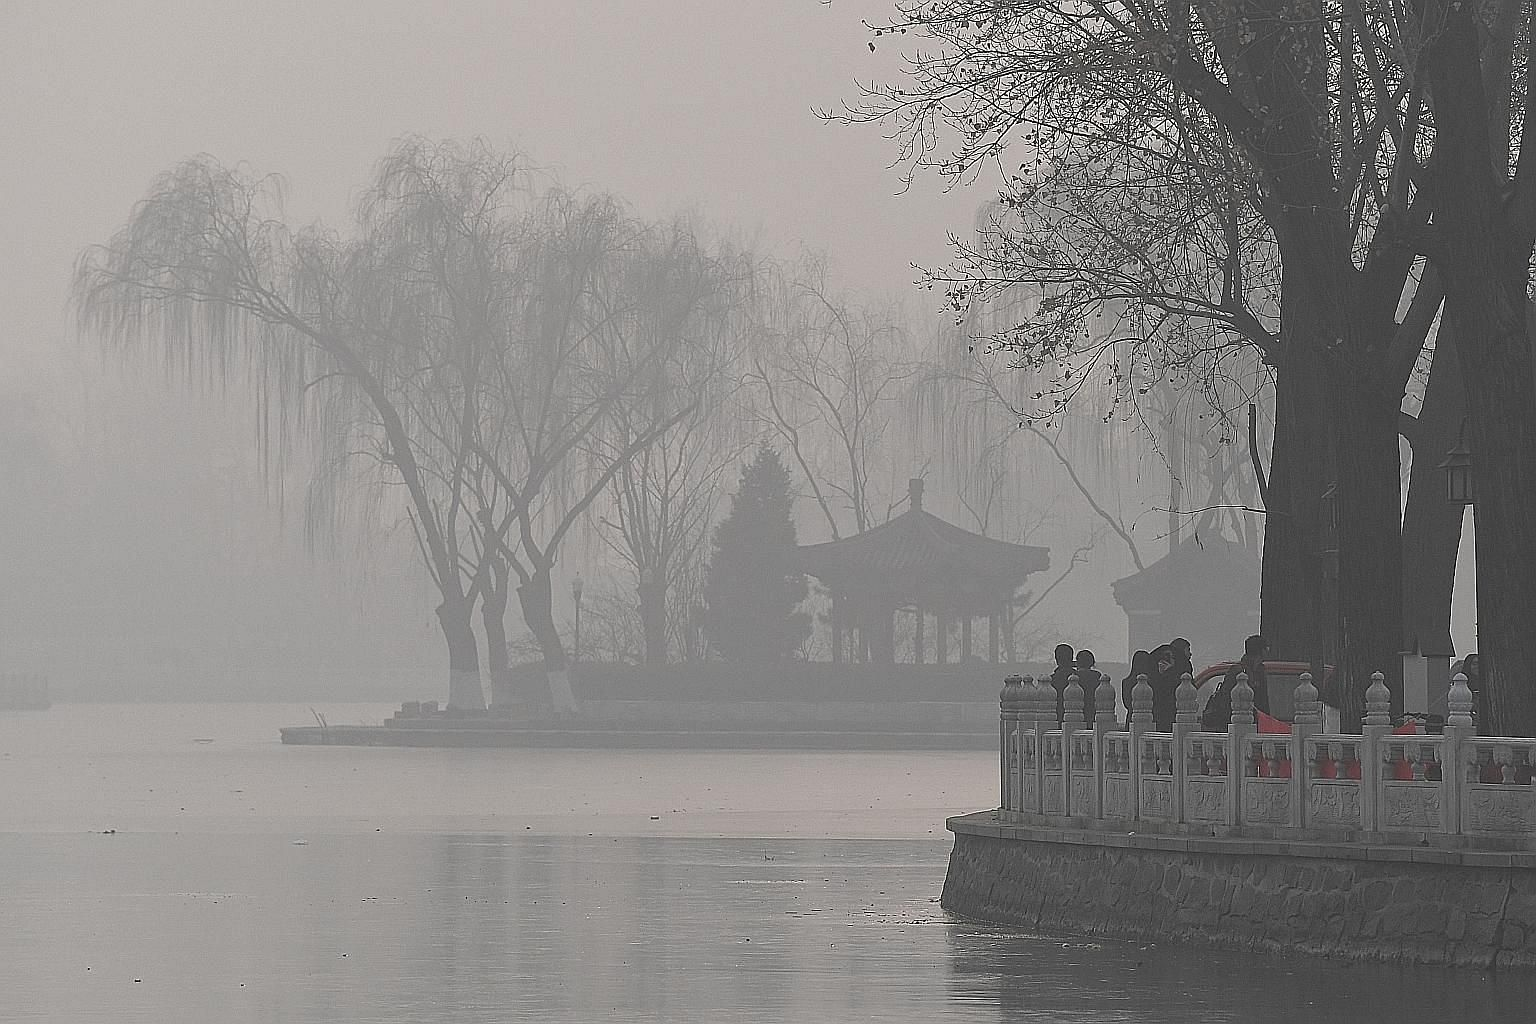 Smog blankets a lake in Beijing in January. Despite the Chinese government's stringent rules on pollution control and emissions, improvement in air quality continues to fall short of public expectations, especially in the north of the country, which